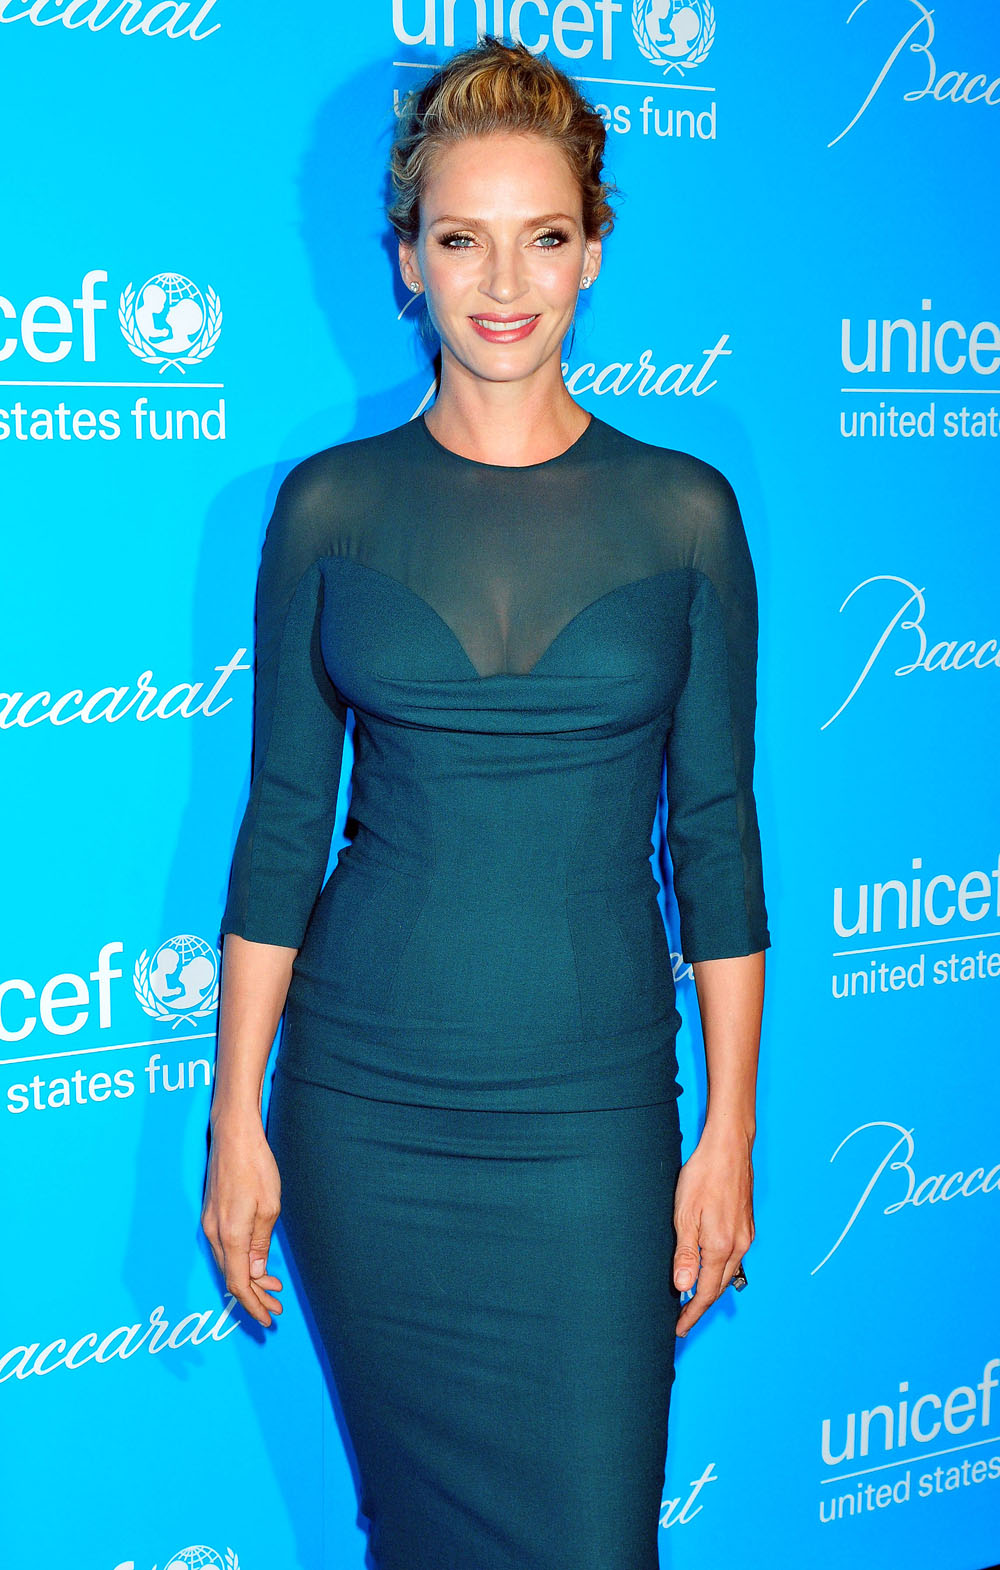 Uma Thurman In A Very Tight Fitting Dress In Unicef